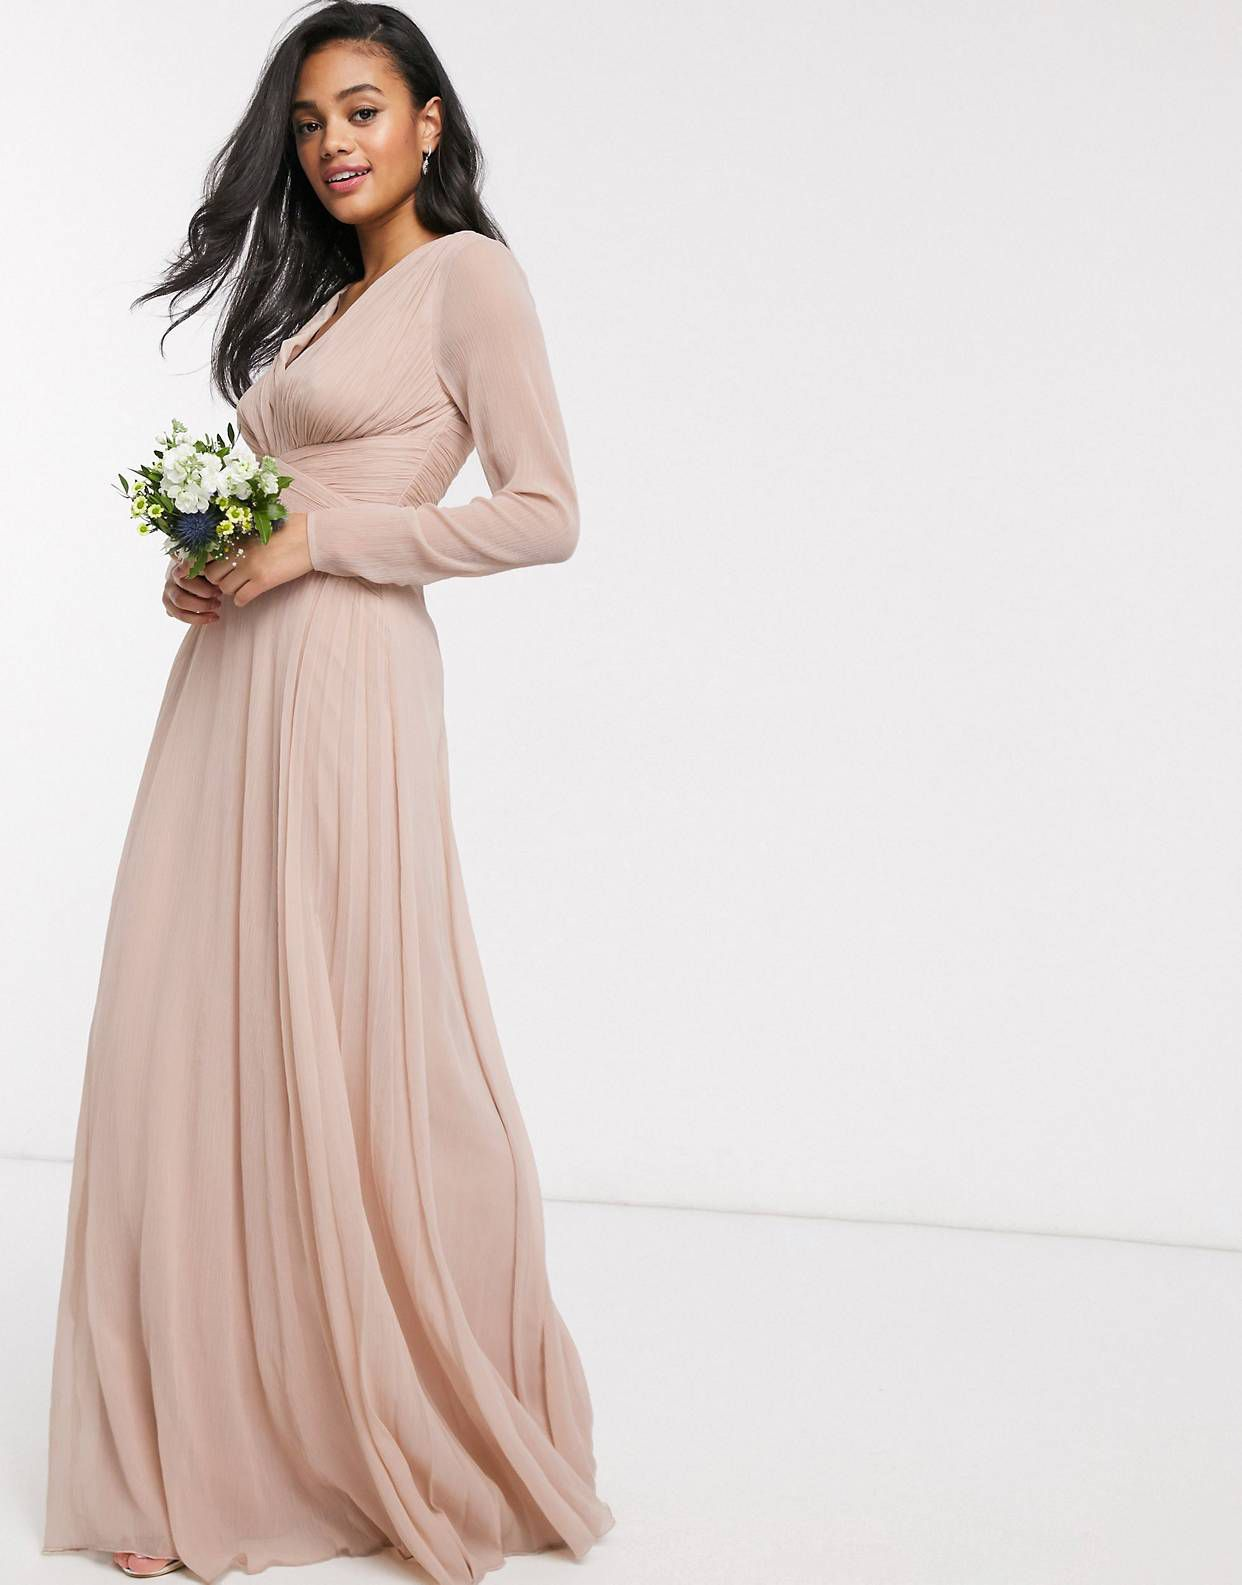 Pin By Roxy Pasternak On Dress A Day Neutral Bridesmaid Dresses Neutral Bridesmaid Dresses Mismatched Bridesmaid Dresses With Sleeves [ 1585 x 1242 Pixel ]